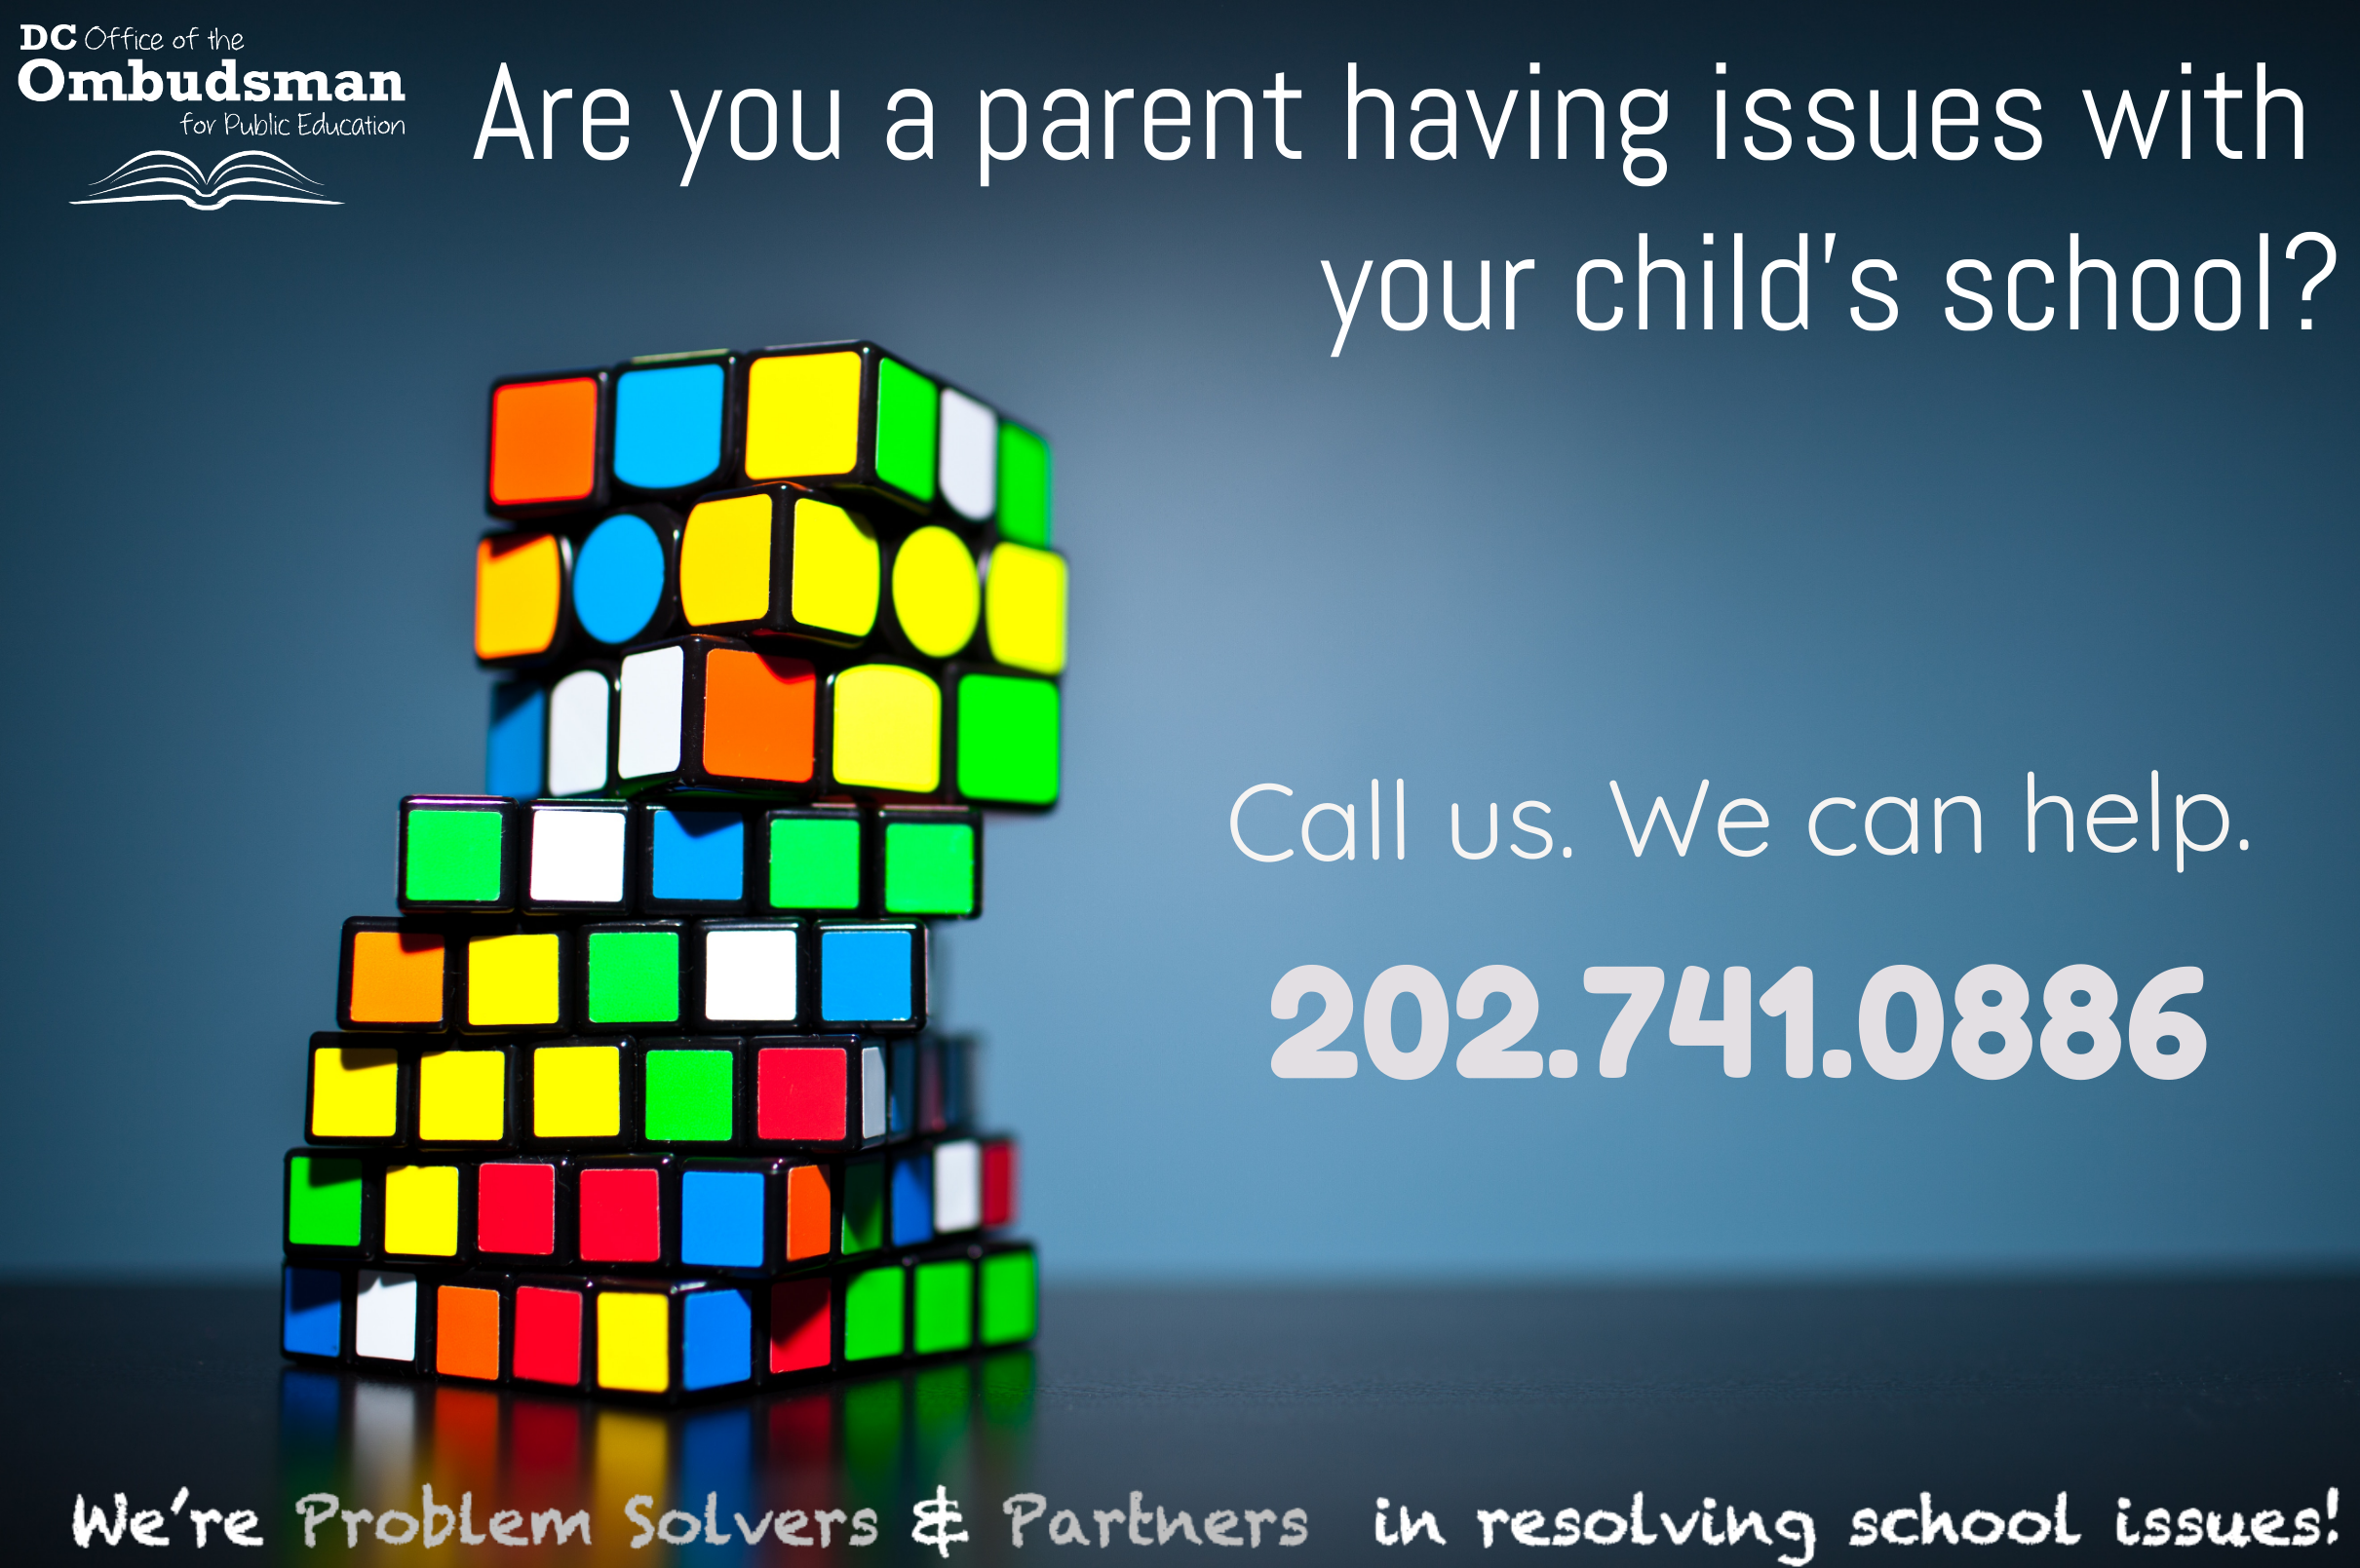 Are you a parent having issues with your child's school? Call us. We can help. 202-741-0889. Or email us at ombudsman@dc.gov. We're Problem Solvers and Partners in Resolving School Issues!